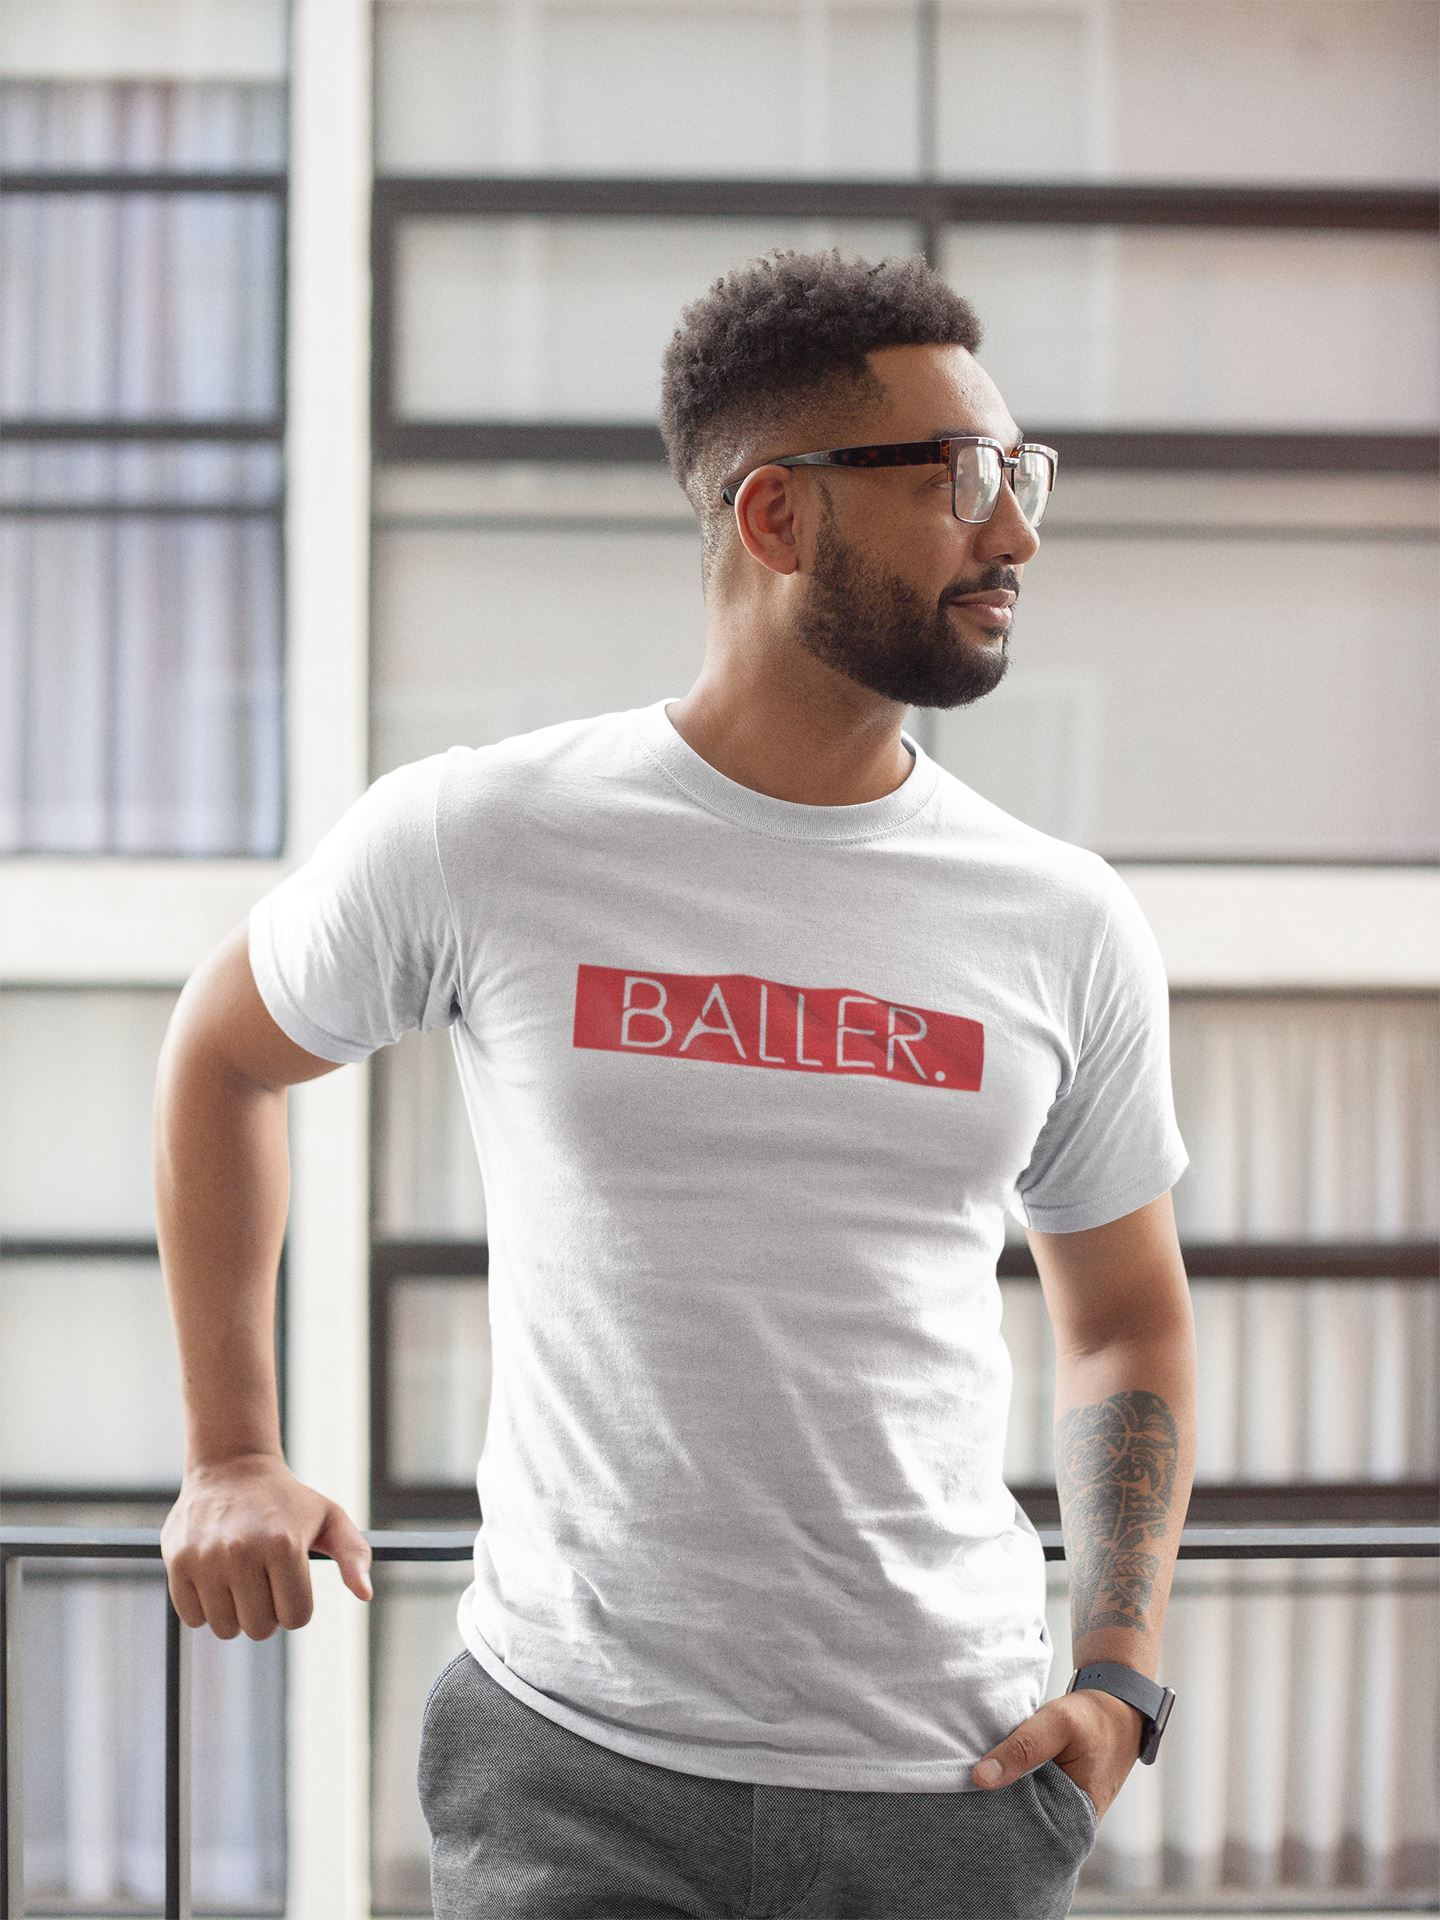 Baller T-Shirt T-shirt EntrepreneurKing.co White S